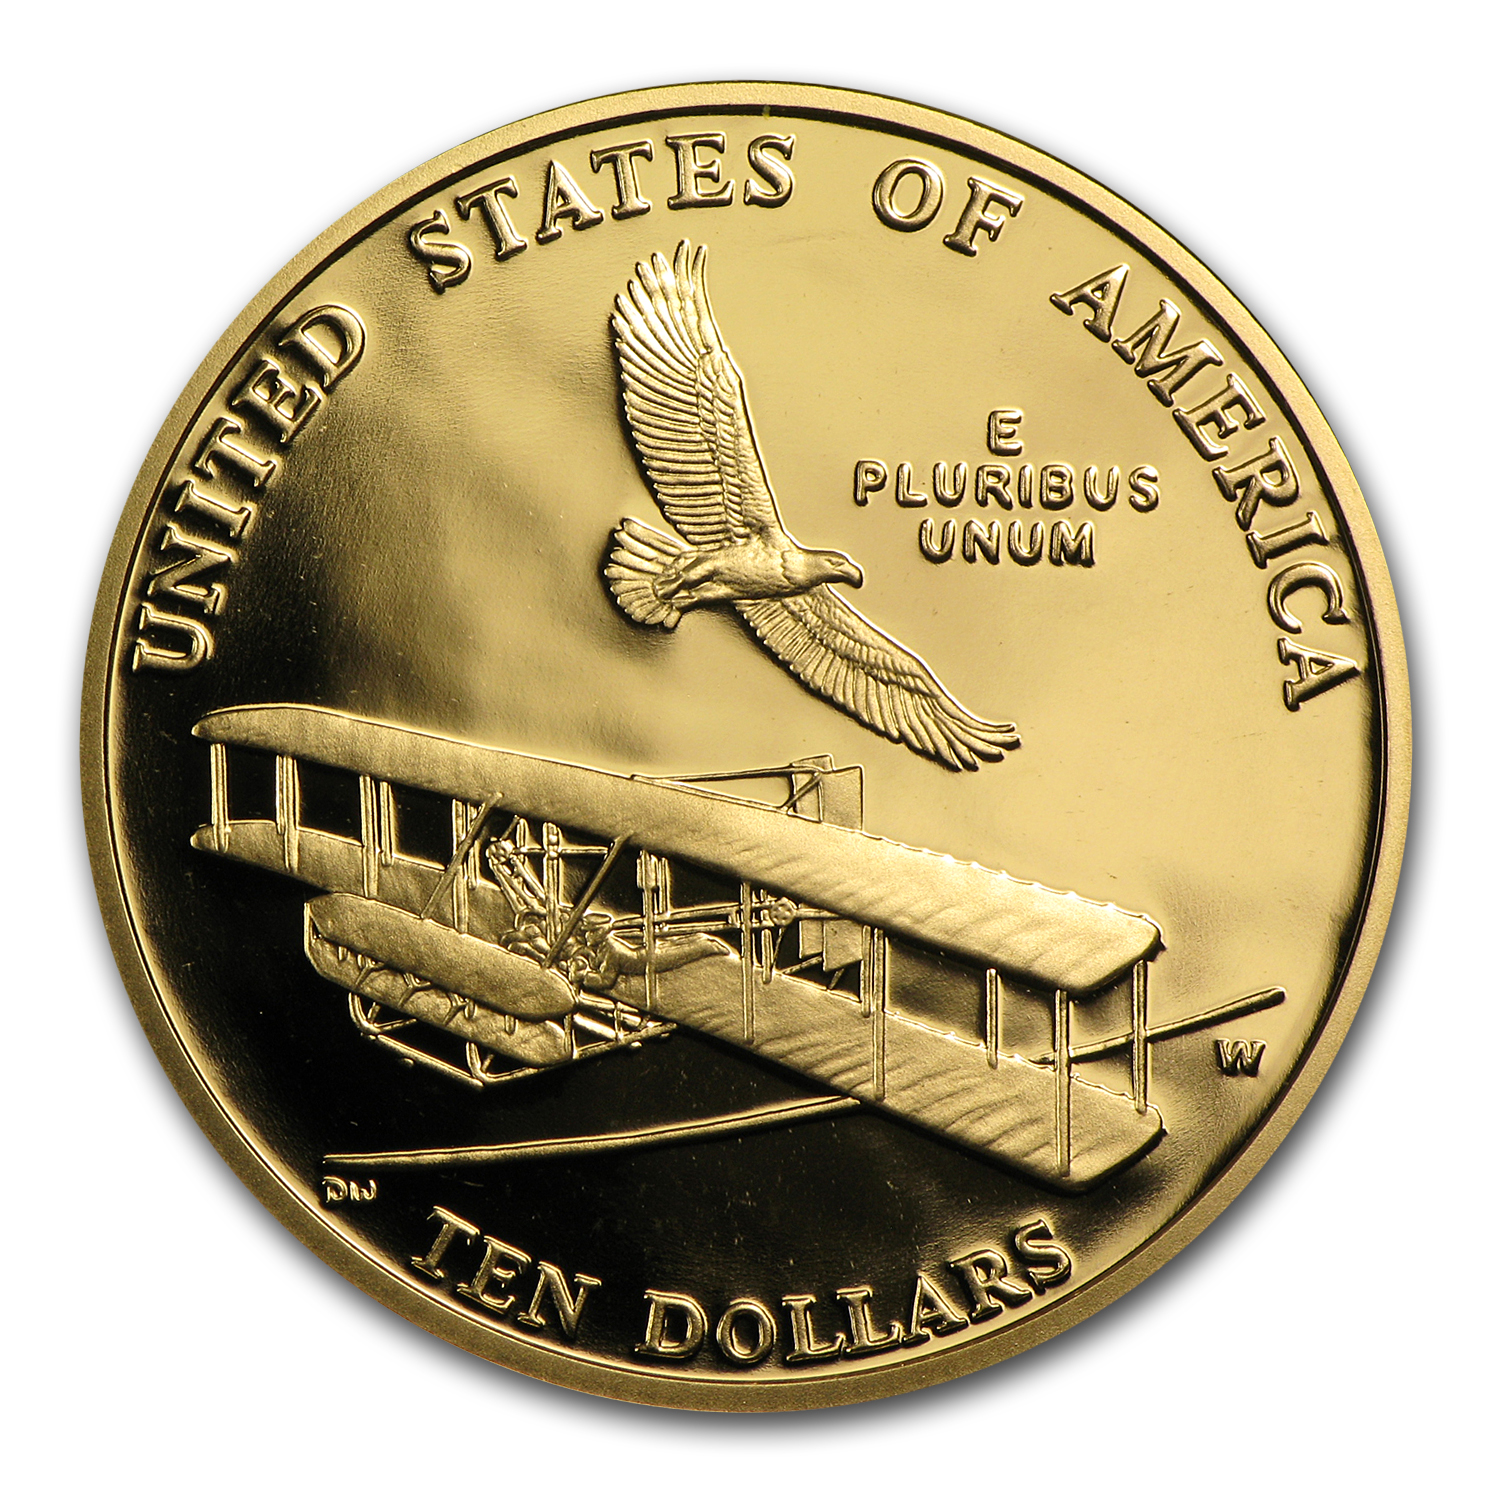 2003-W Gold $10 Commem First Flight Centennial Proof